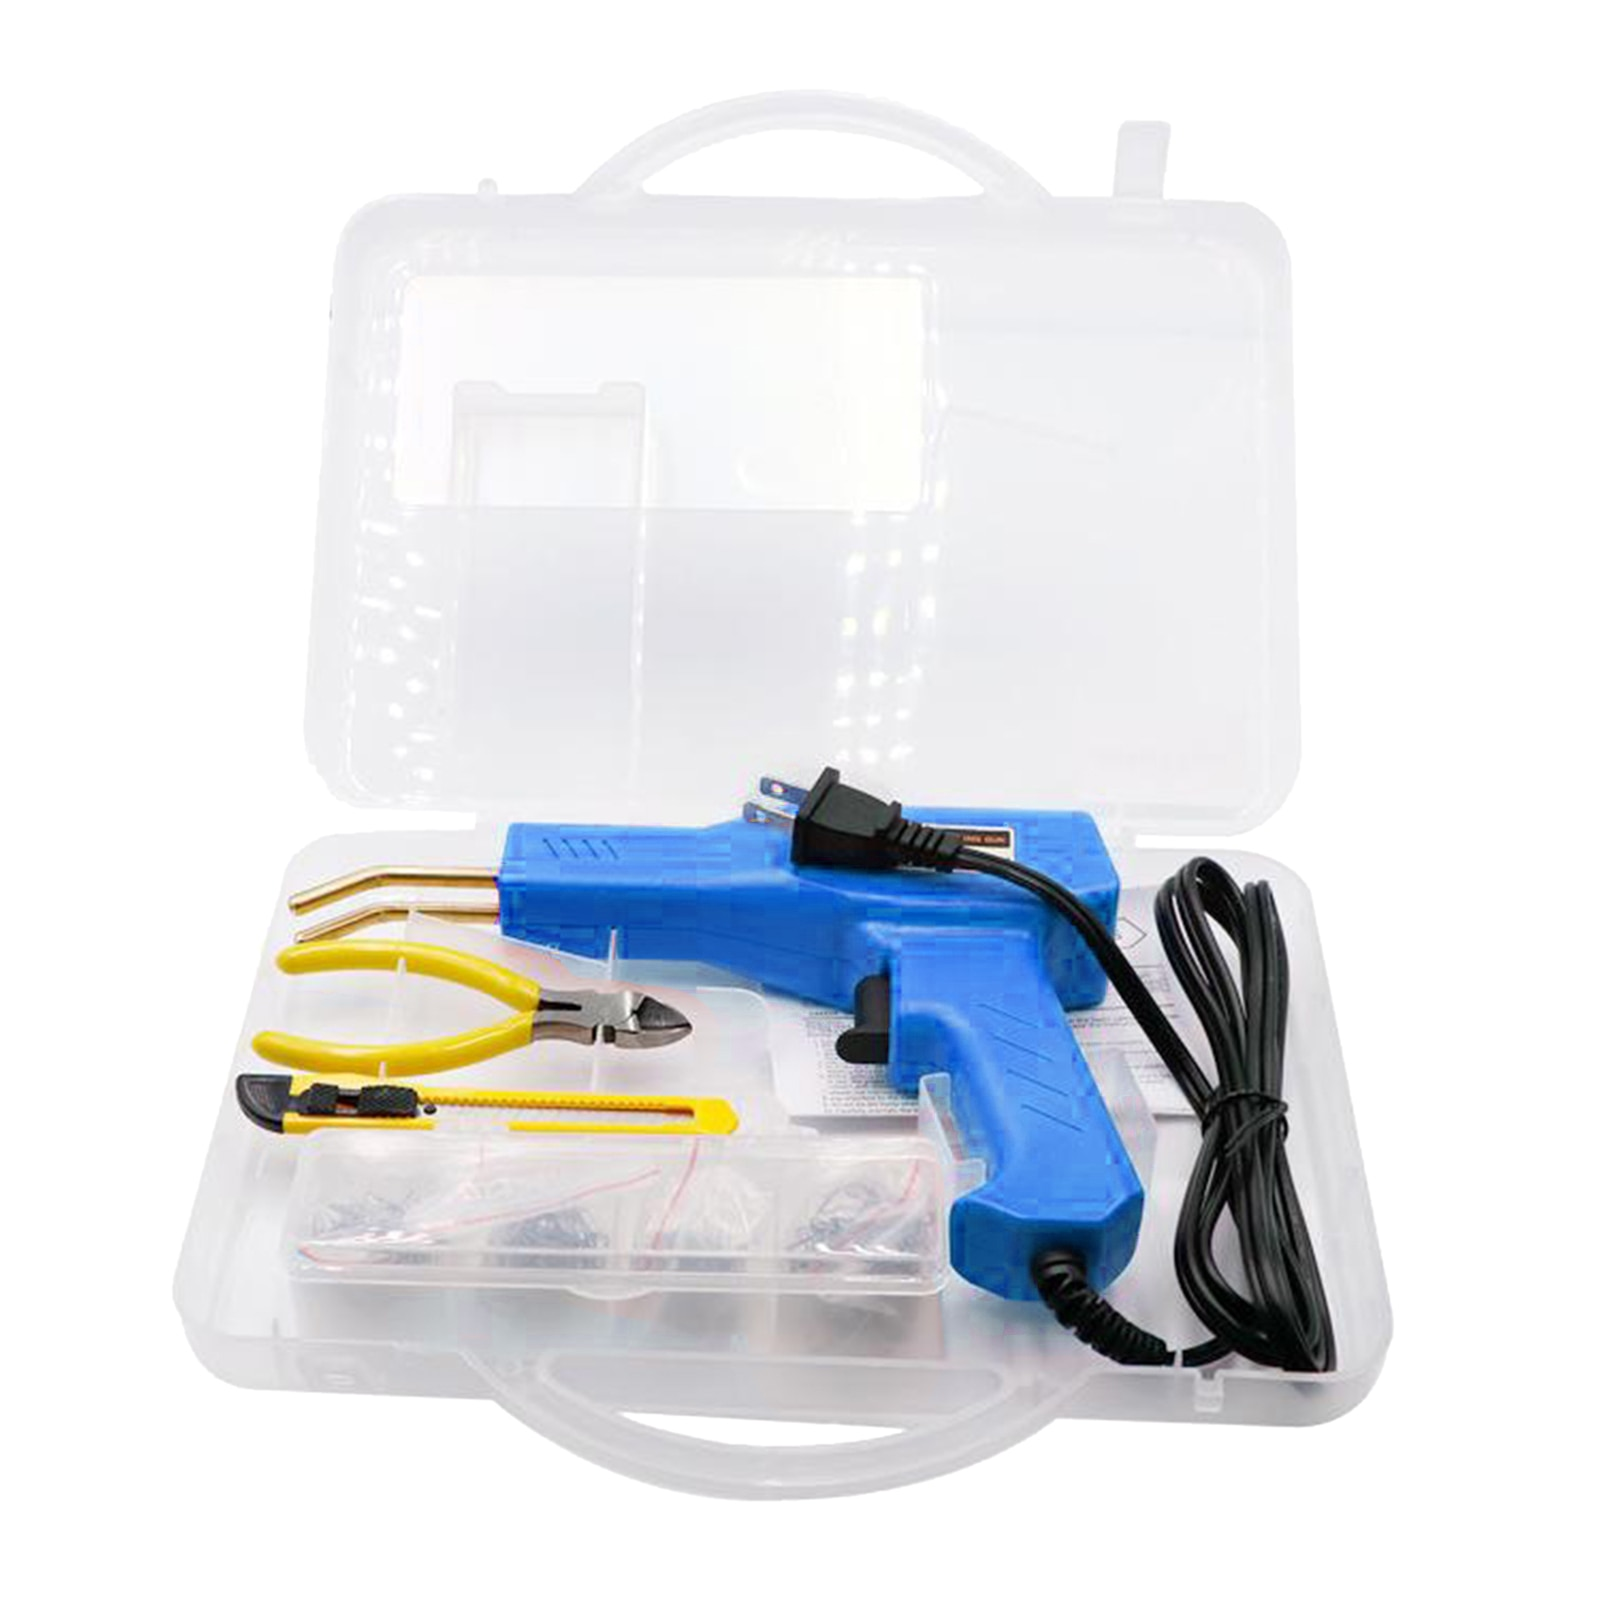 Hot Stapler Machine Handy Plastic Weld Garage Tools Repairing Kits Blue